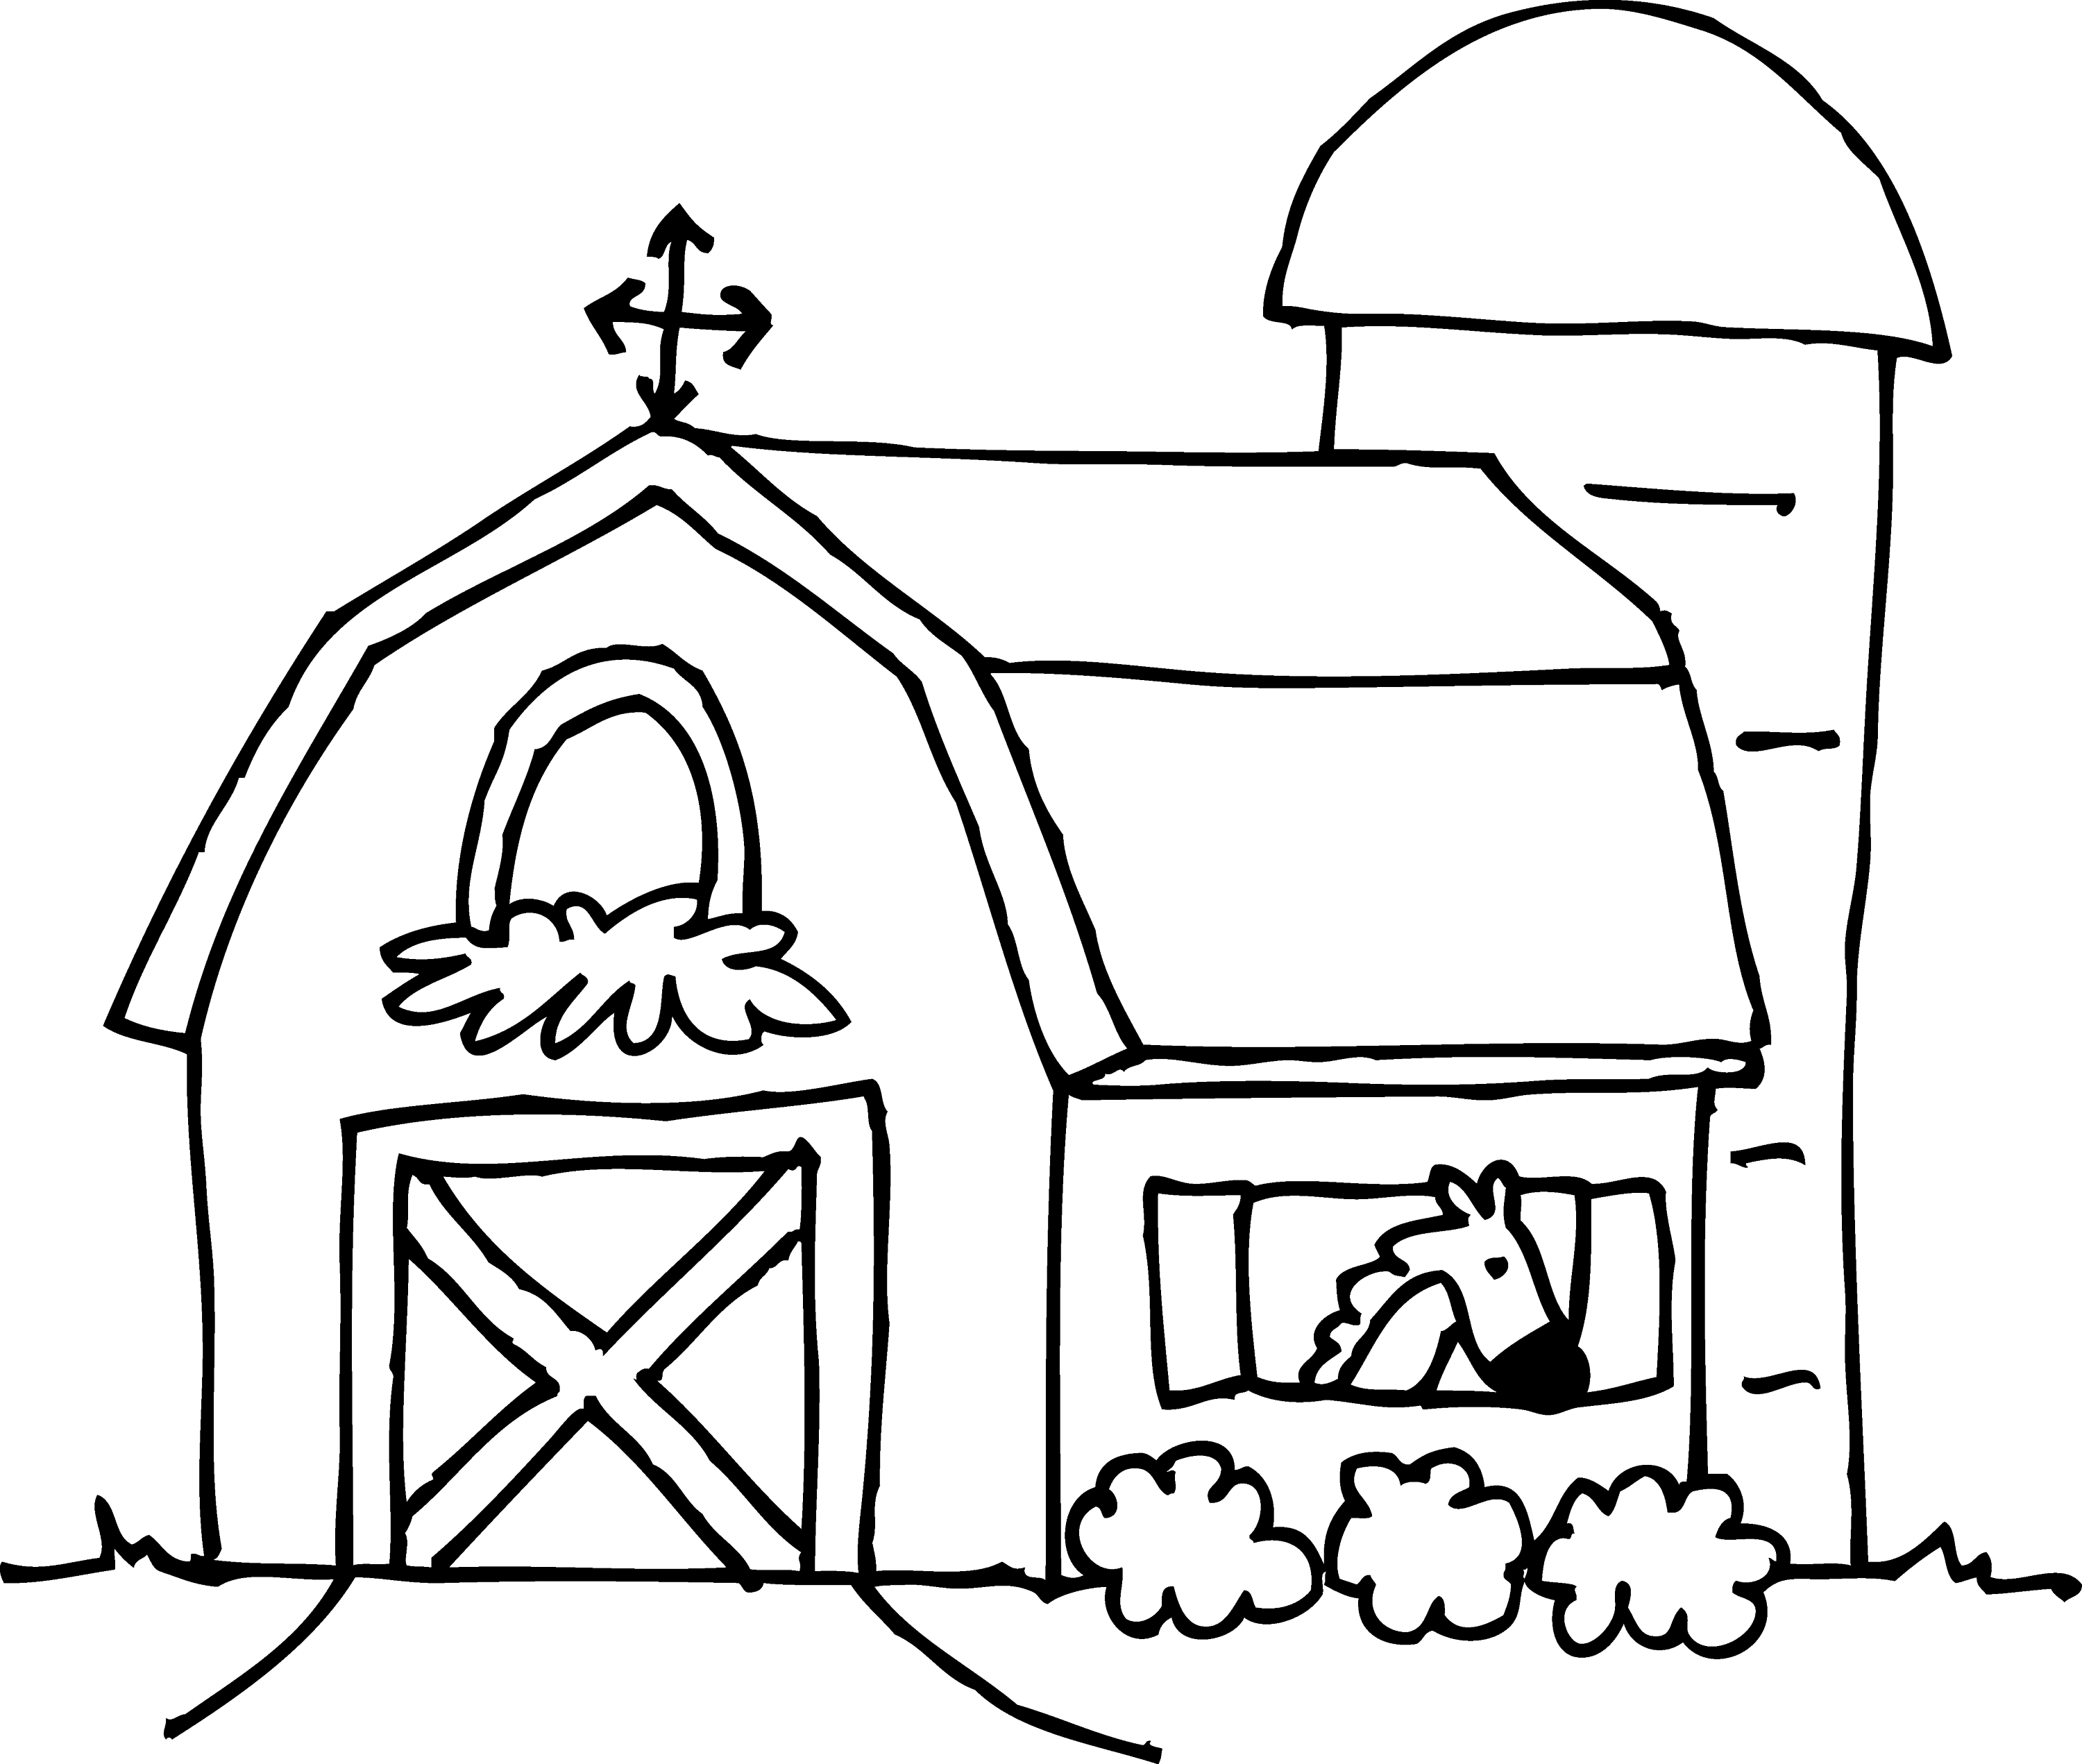 barn pictures to coloring pages - photo#33